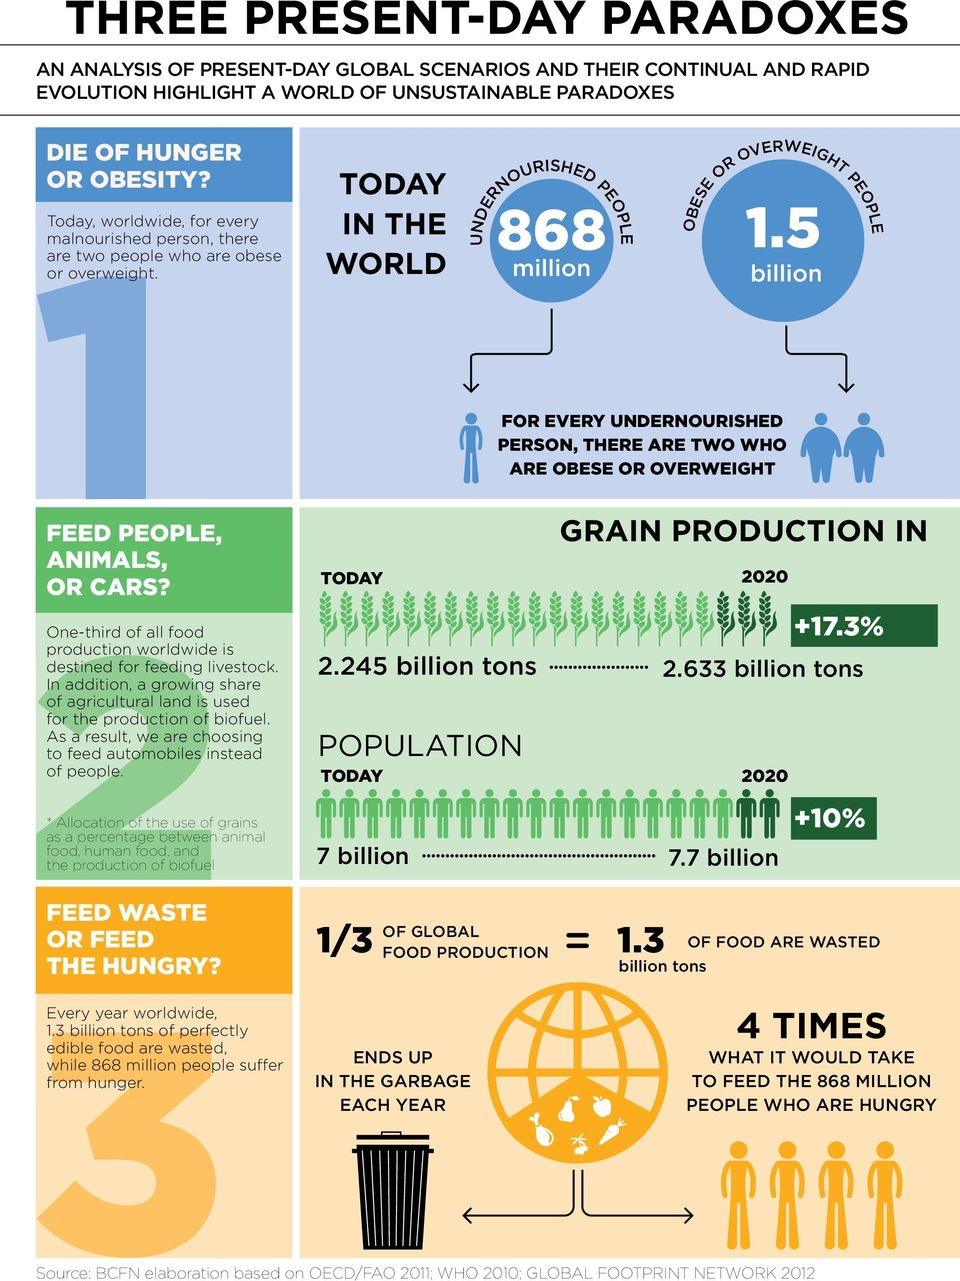 2* Allocation of the use of grains as a percentage between animal food, human food, and the production of biofuel One-third of all food production worldwide is destined for feeding livestock.